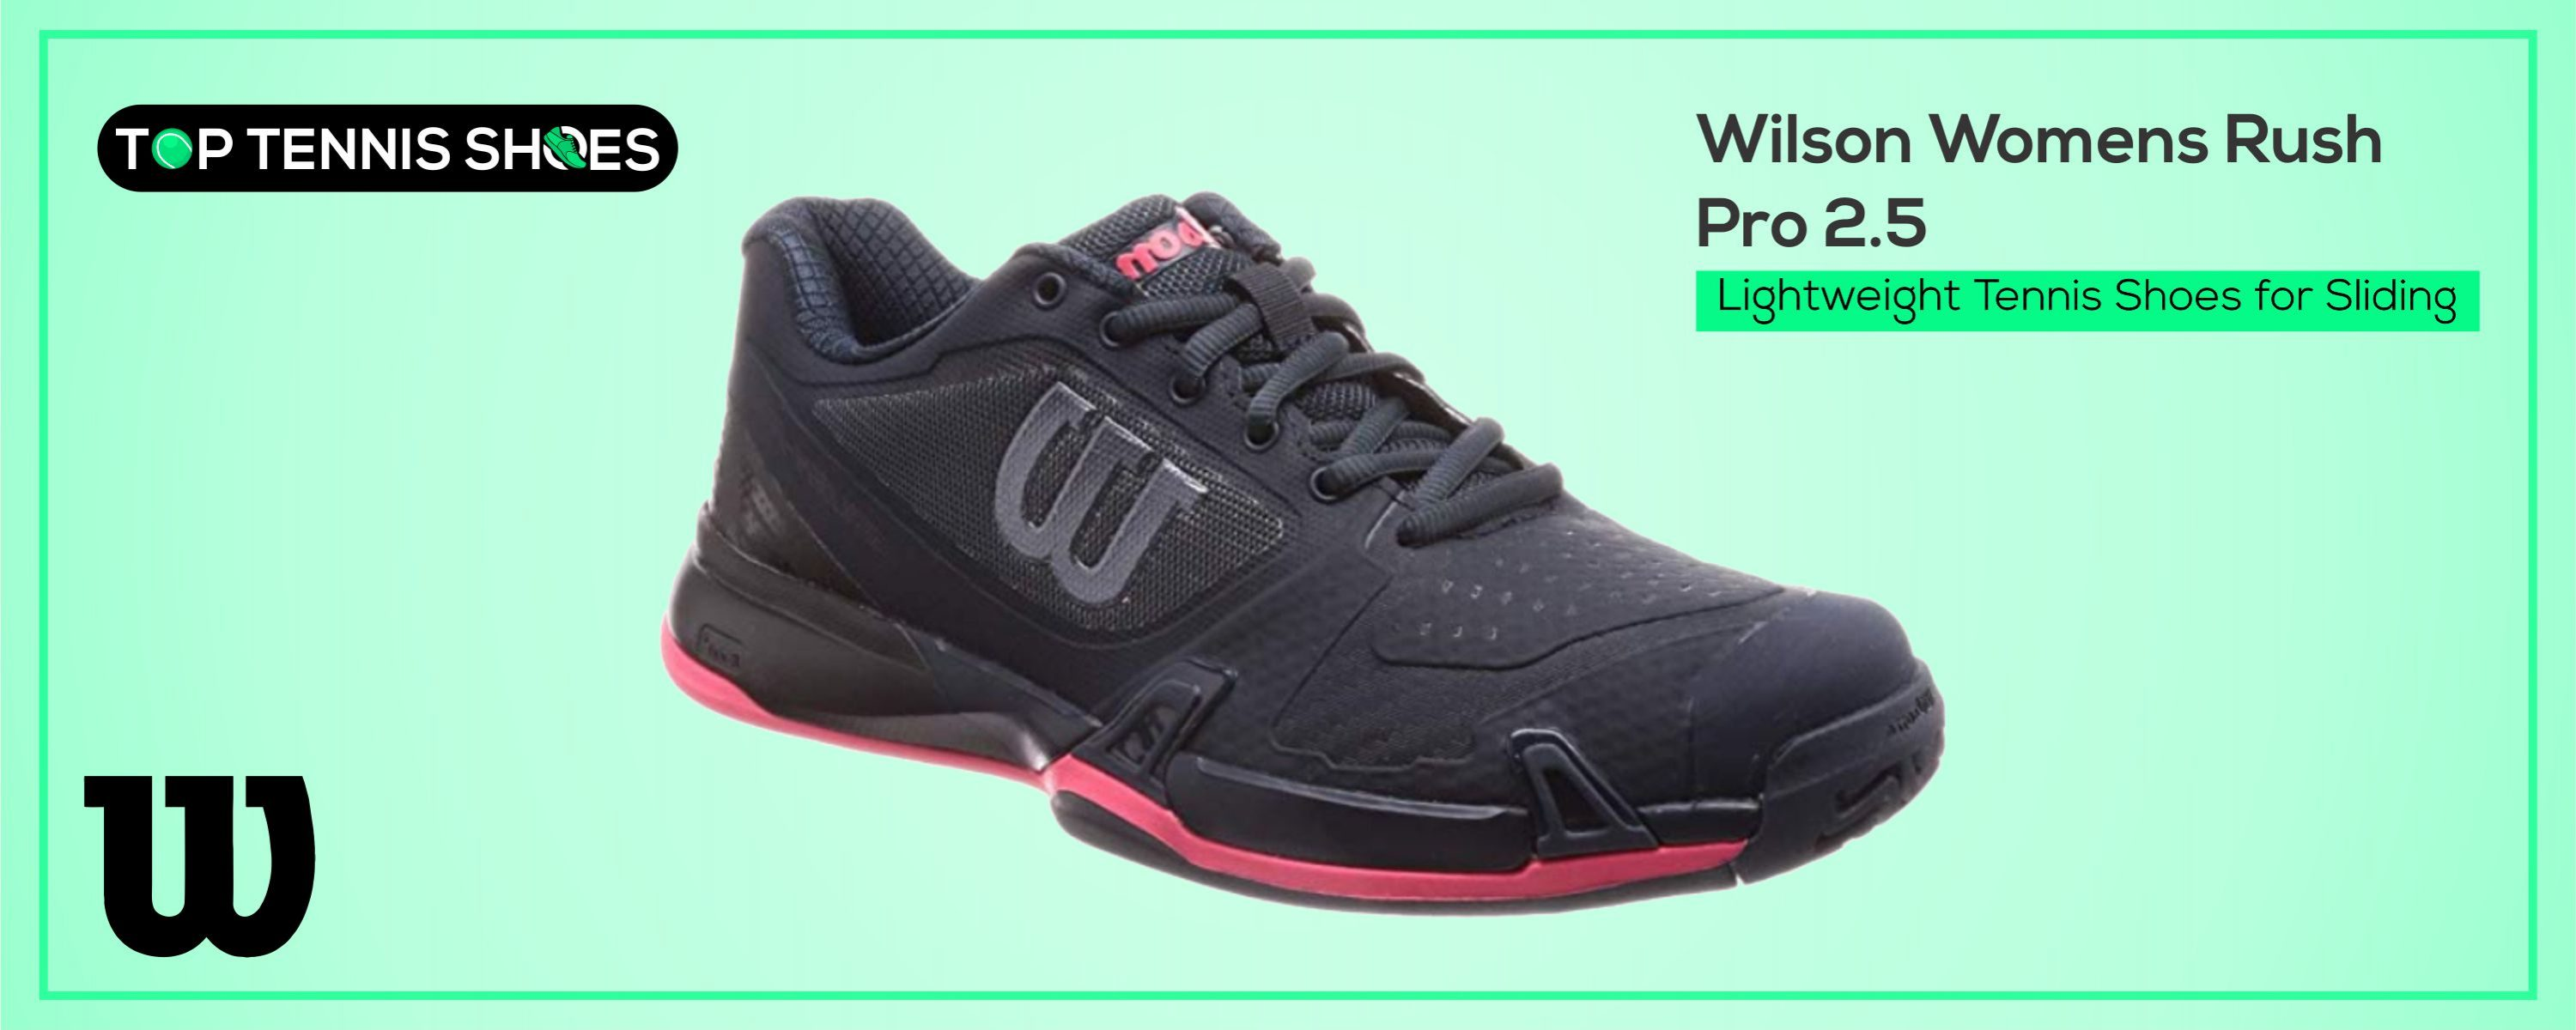 Lightweight Tennis Shoes for Sliding